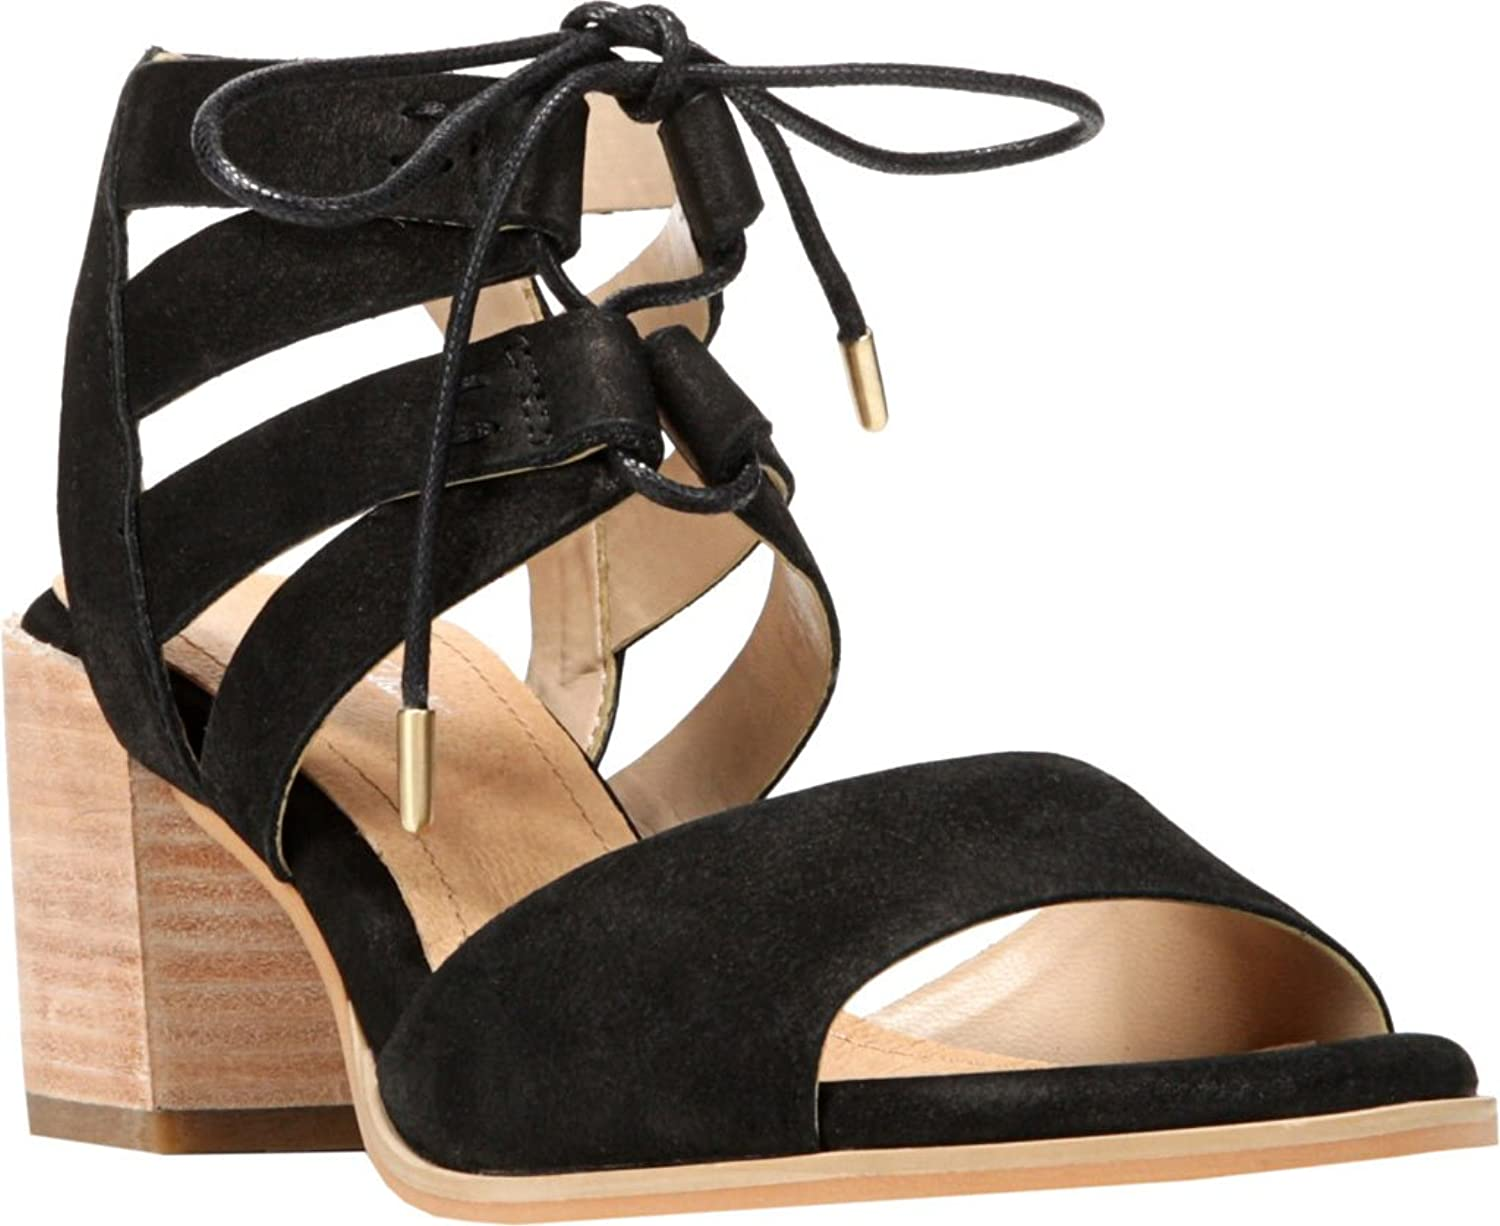 Dr. Scholl's Original Collection Women's Mista Strappy Sandal